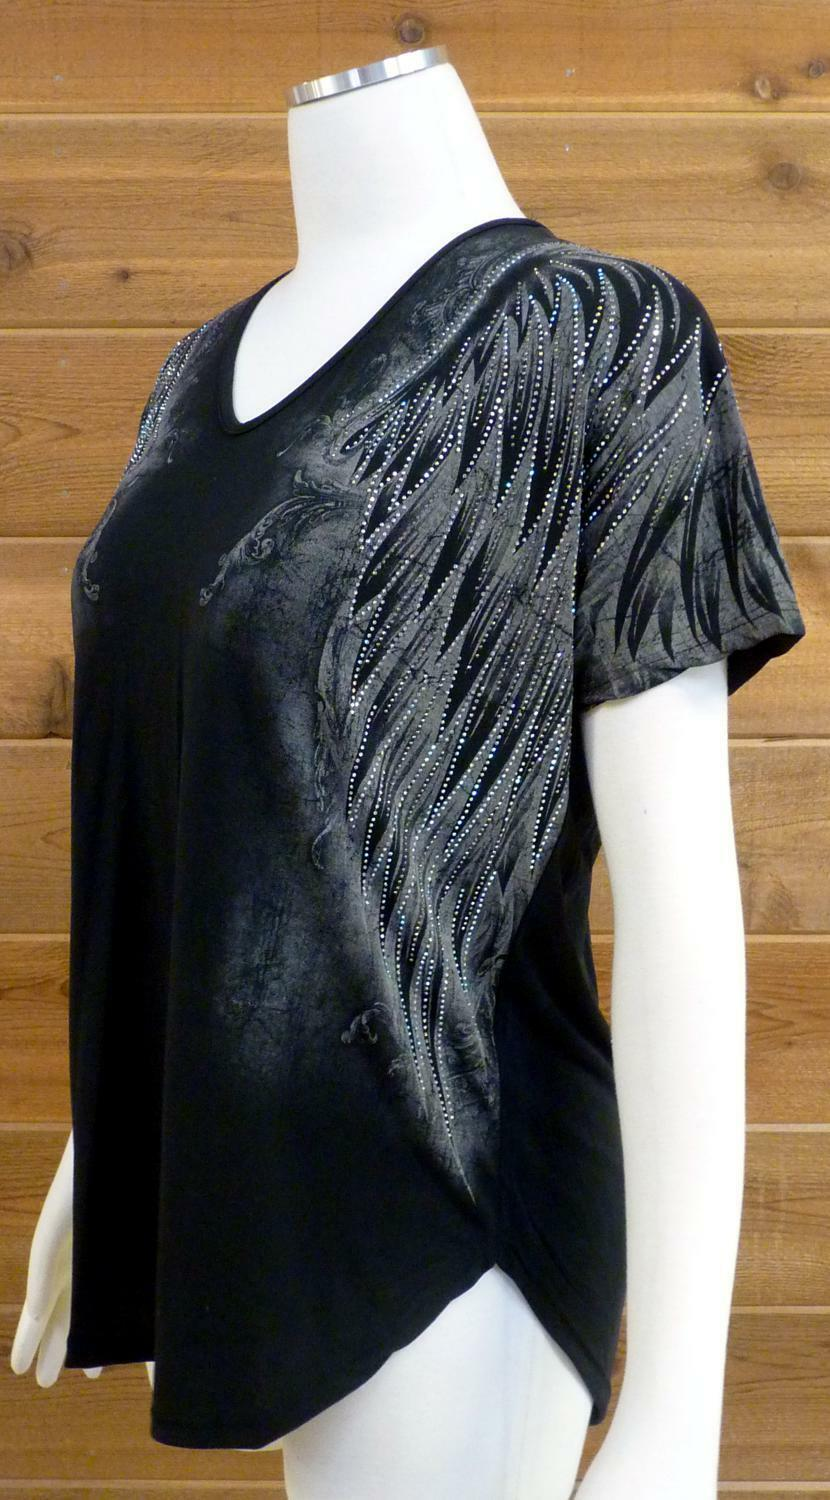 Vocal Wing Top  Wing Design Covers Shoulders, Down Front   - Sz Small S